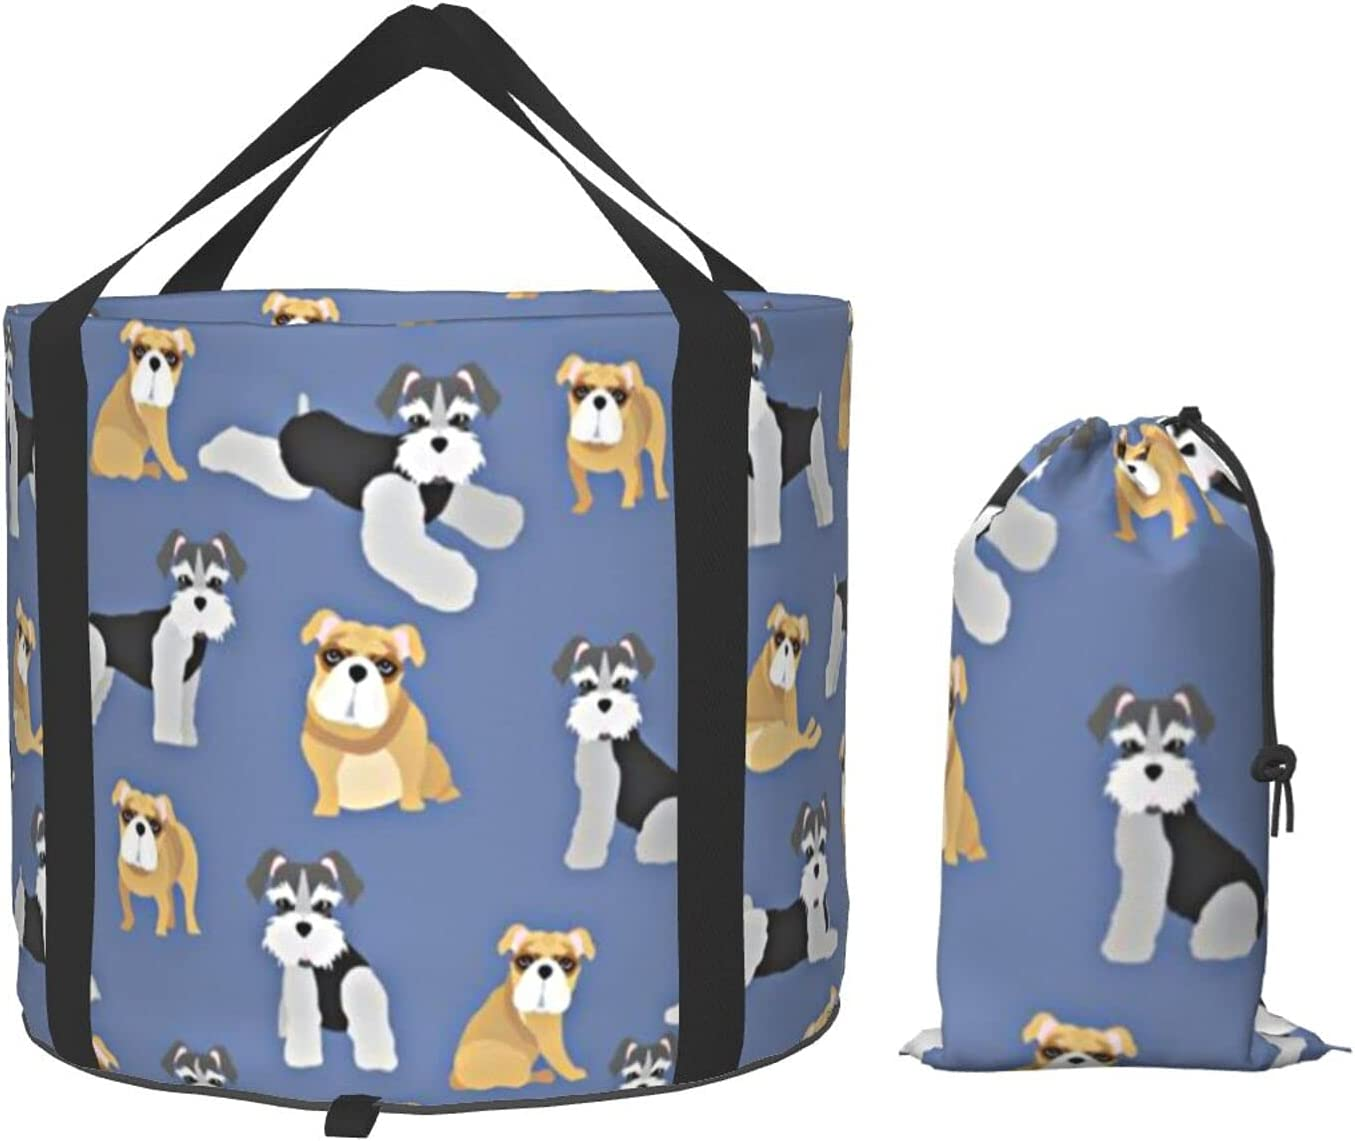 Multifunctional Portable Collapsible price Bucket Pug Face F Quantity limited Schnauzer